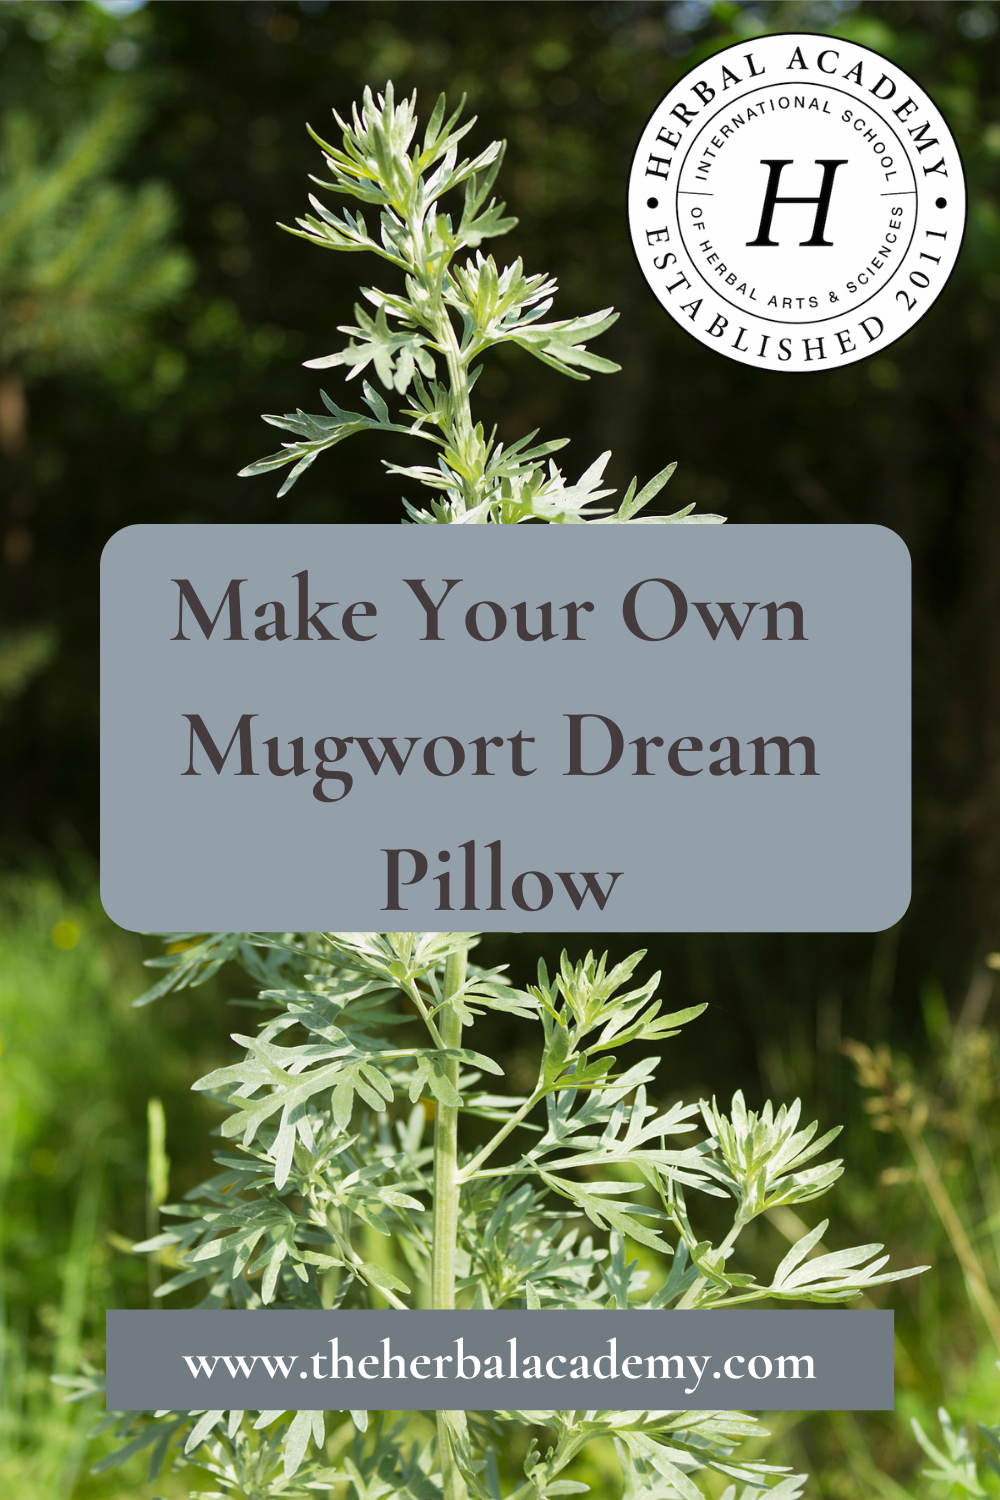 Mugwort Dream Pillow for Natural Sleep Aid | Herbal Academy | Mugwort offers a natural sleep aid and a mugwort dream pillow is the ideal gift for those who cannot remember their dreams.